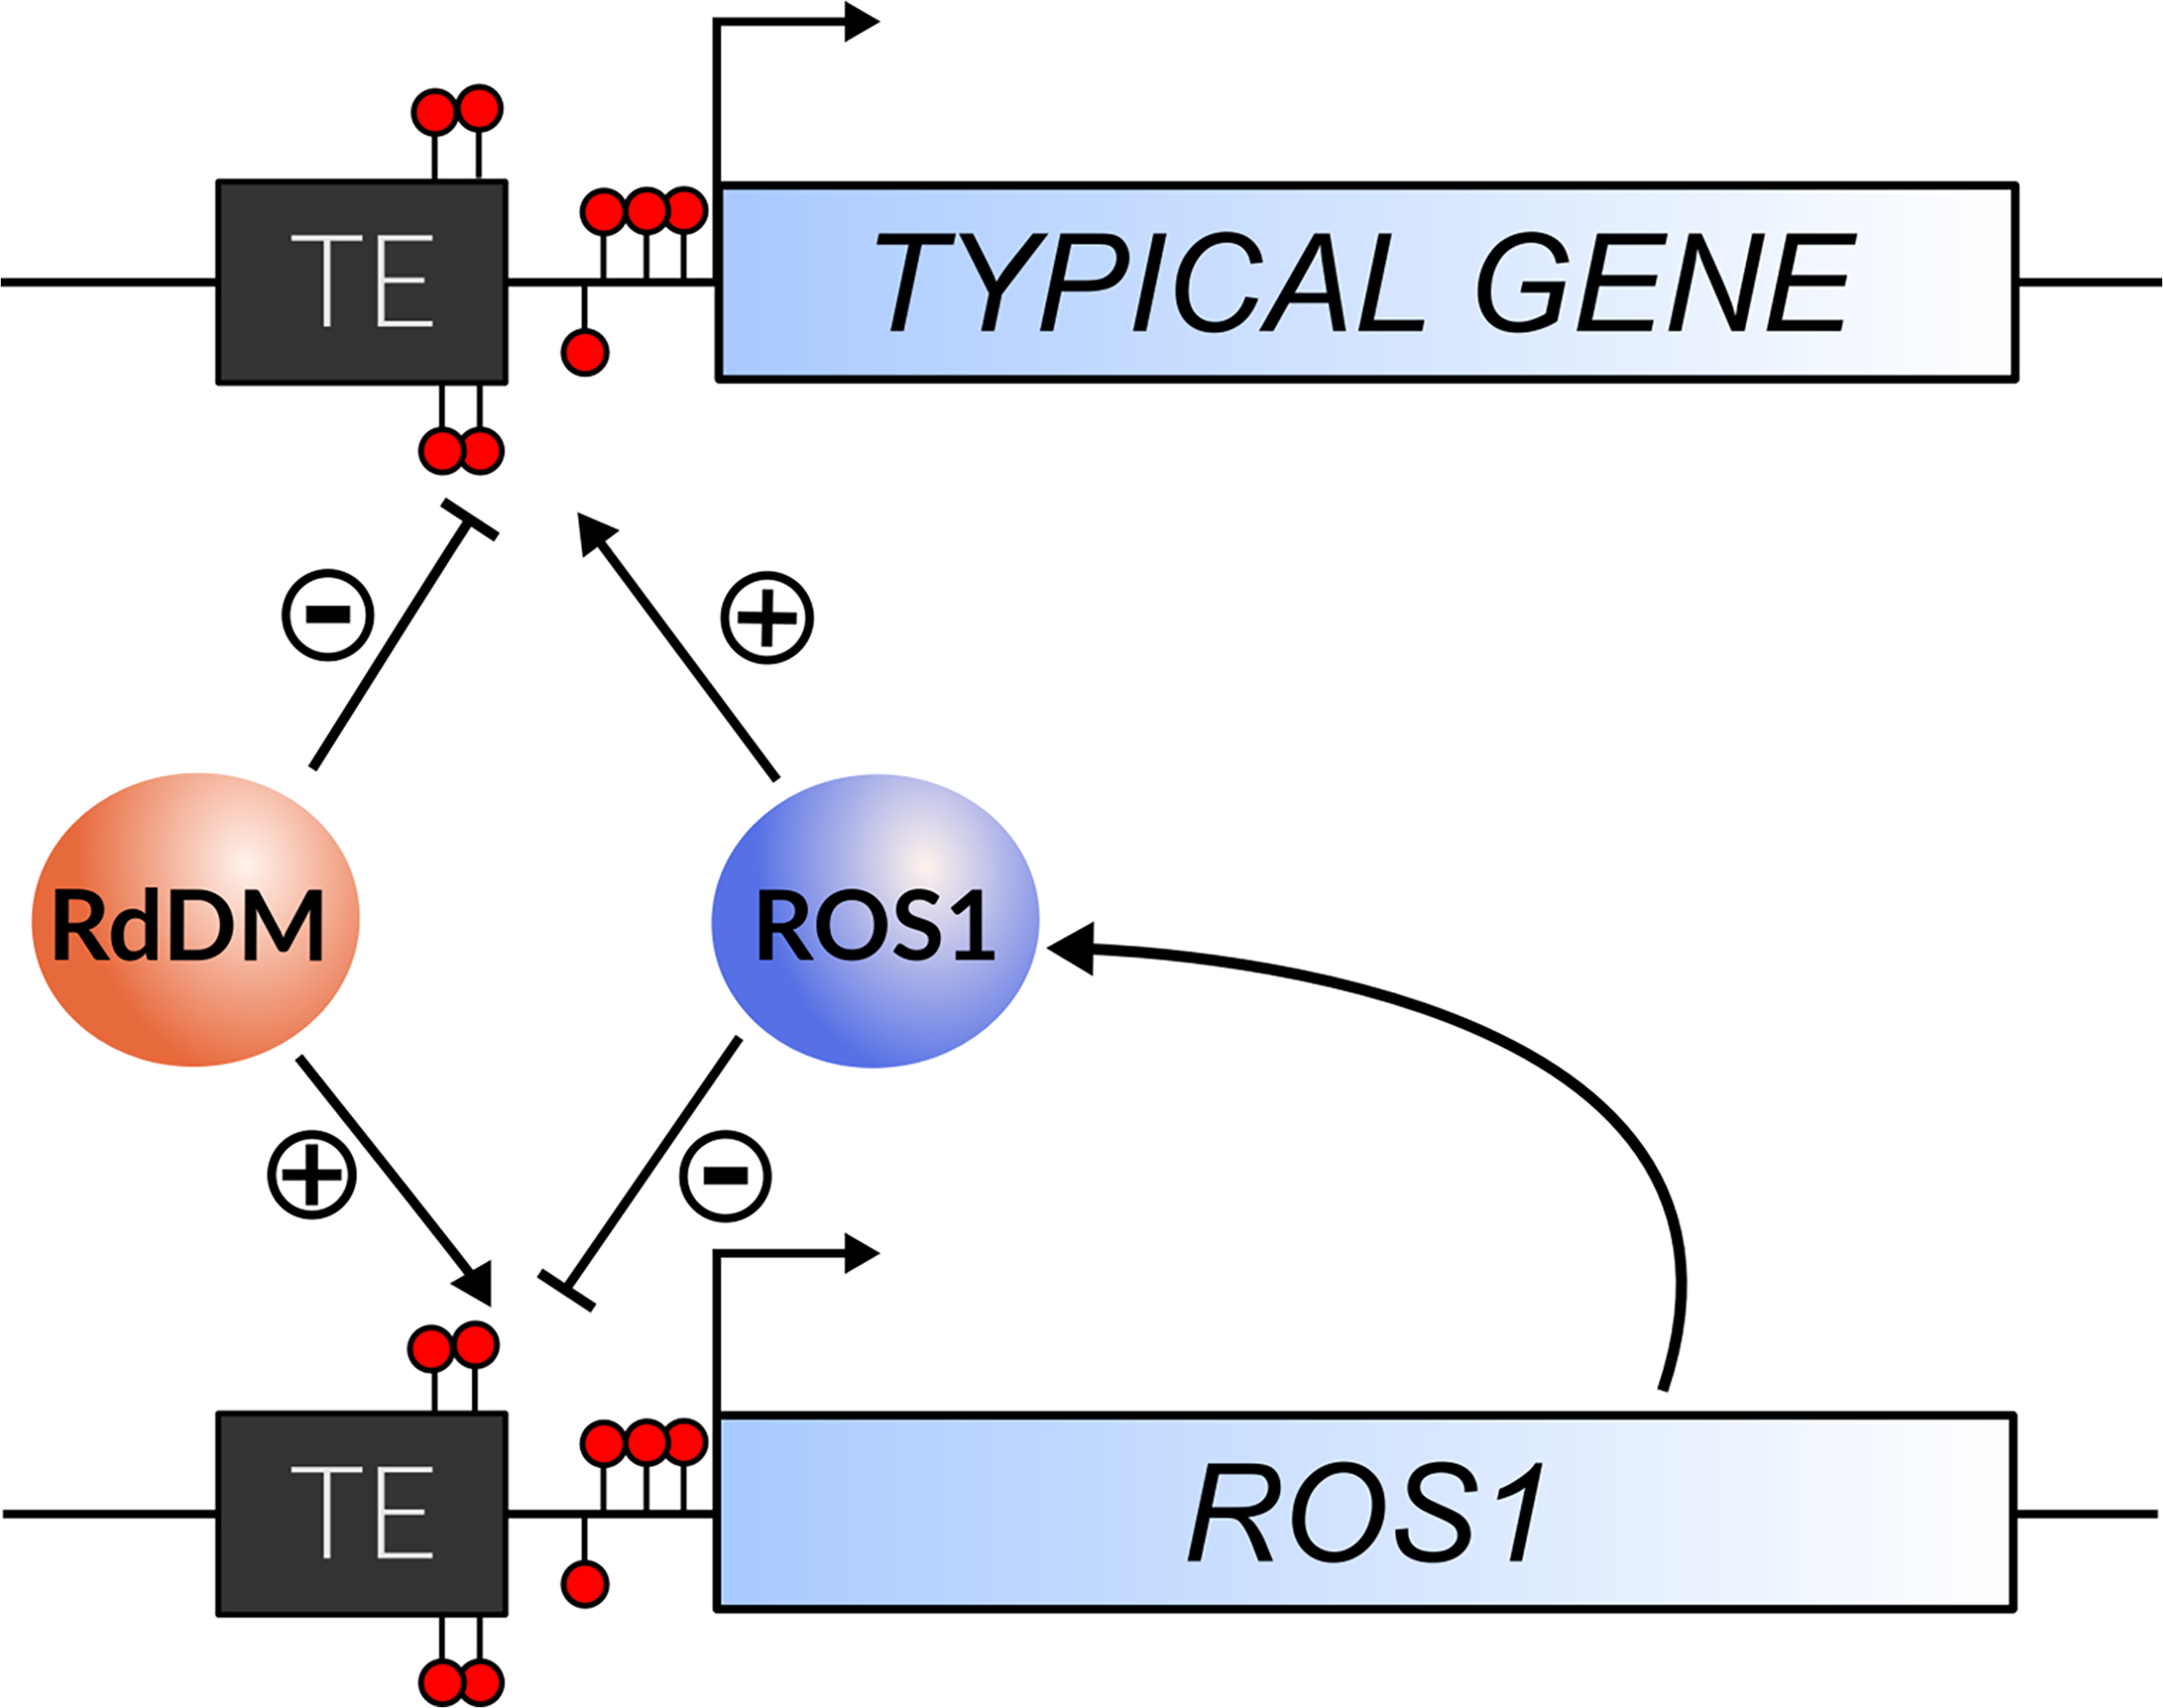 The regulation of <i>ROS1</i> by methylation acts as an epigenetic rheostat.